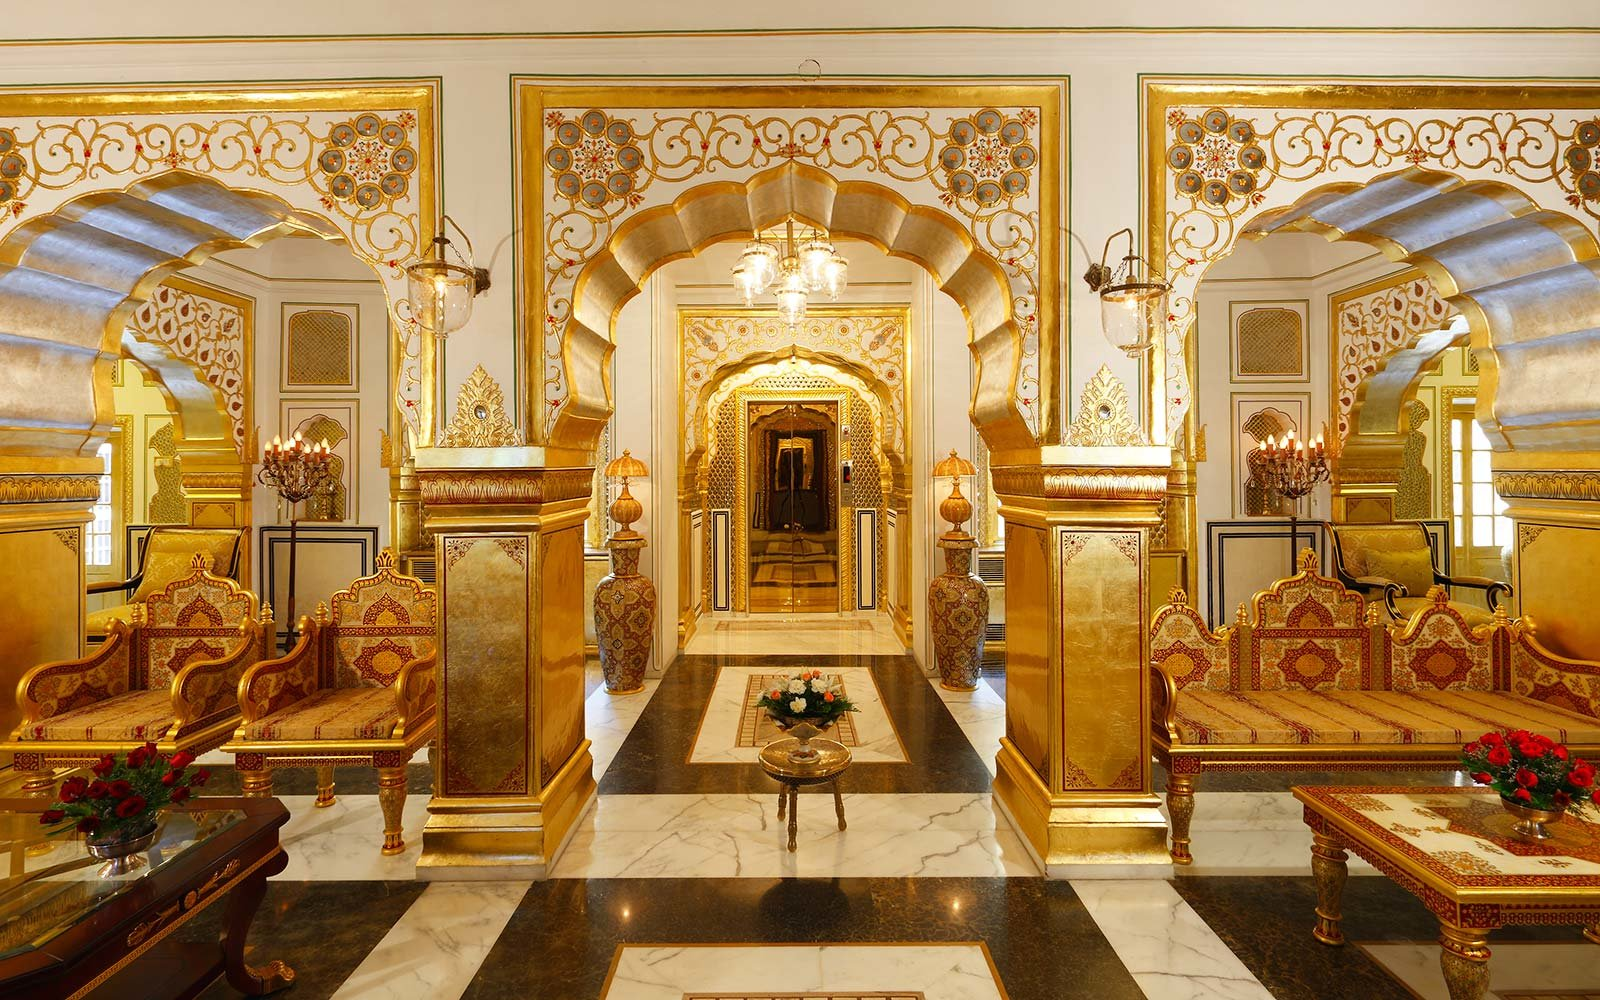 Luxury Escapes 2018 - Maharajah's Pavilion at Raj Palace Jaipur India - luxury hotels - most expensive suite in the world - luxury vacation rentals